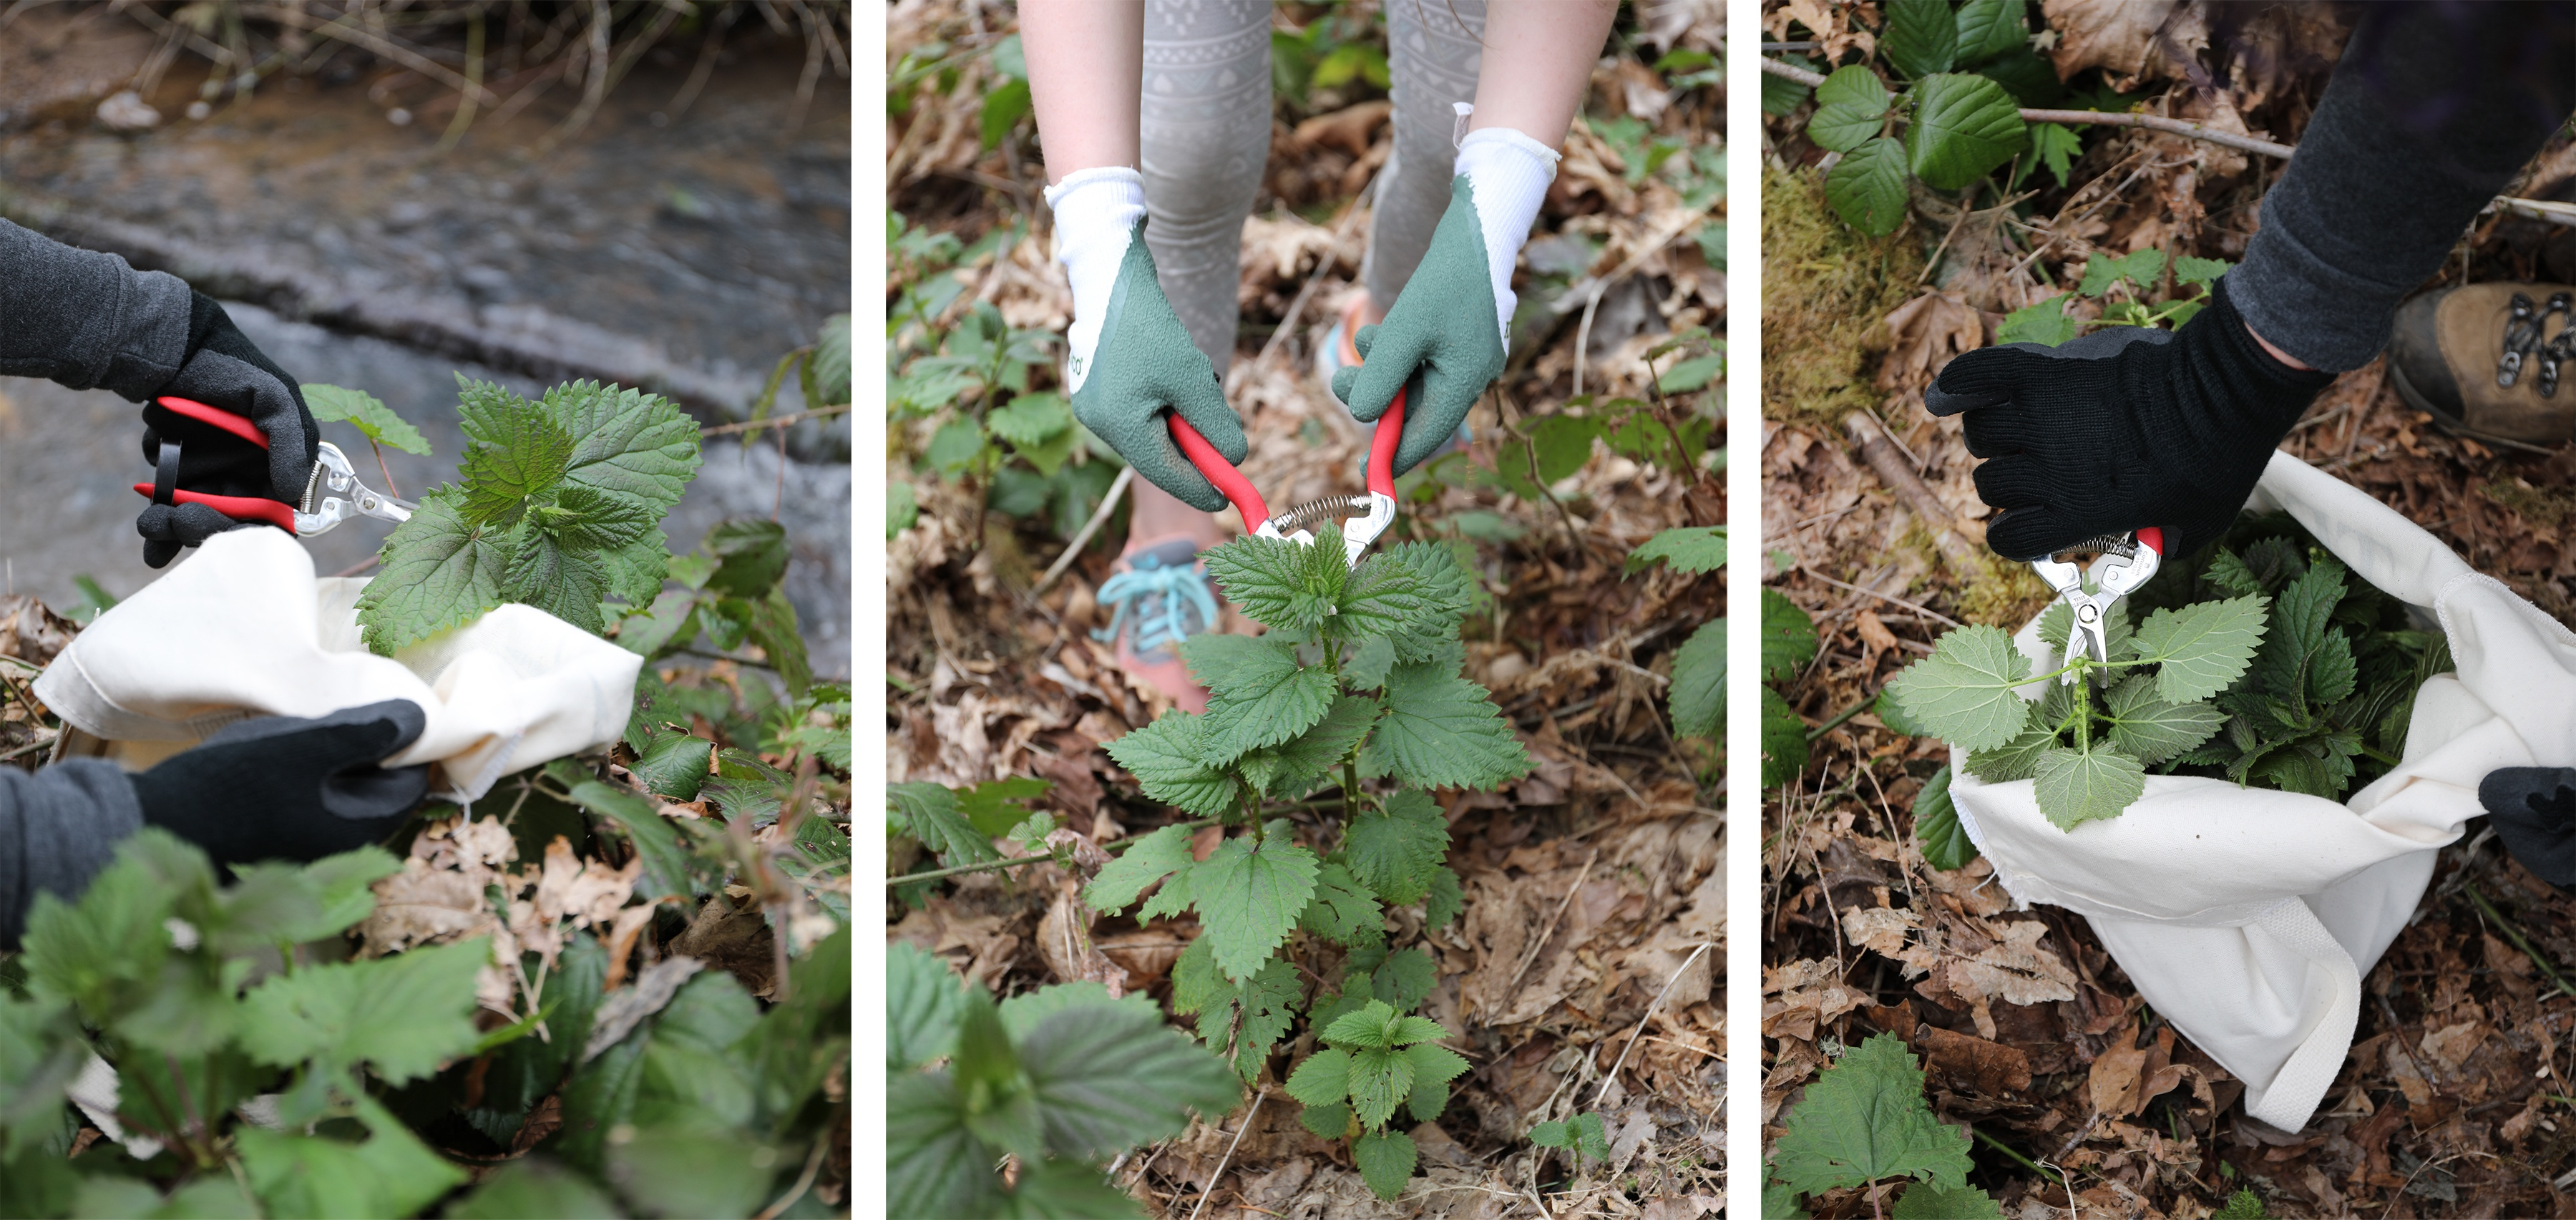 Three images of people wearing gloves harvesting stinging nettles in the wild with garden clippers